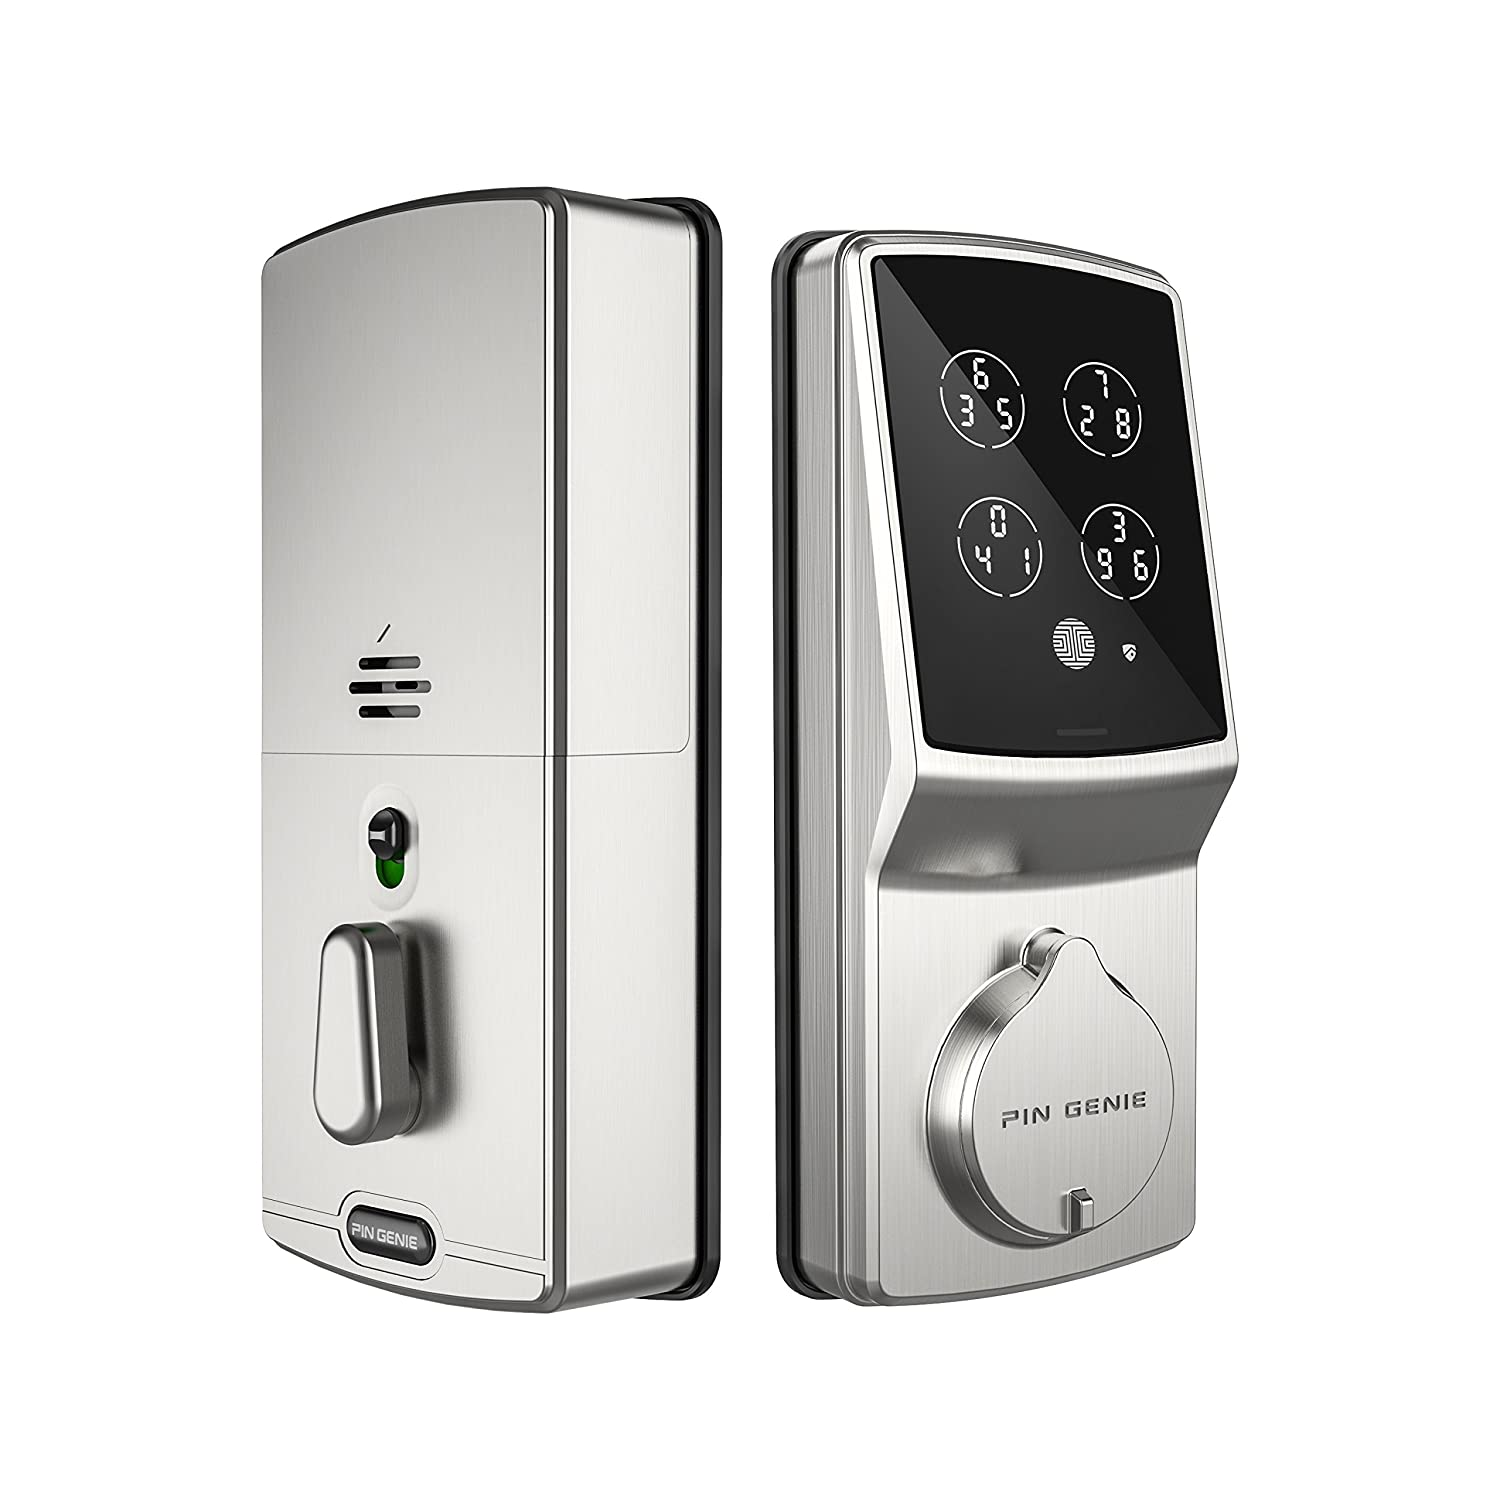 PIN Genie Keyless Digital Door Lock (PGD718) with Highly Secure Patented Touchscreen | Discrete PIN Code Input | Keypad Deadbolts Smart Home Entry | Satin Nickel